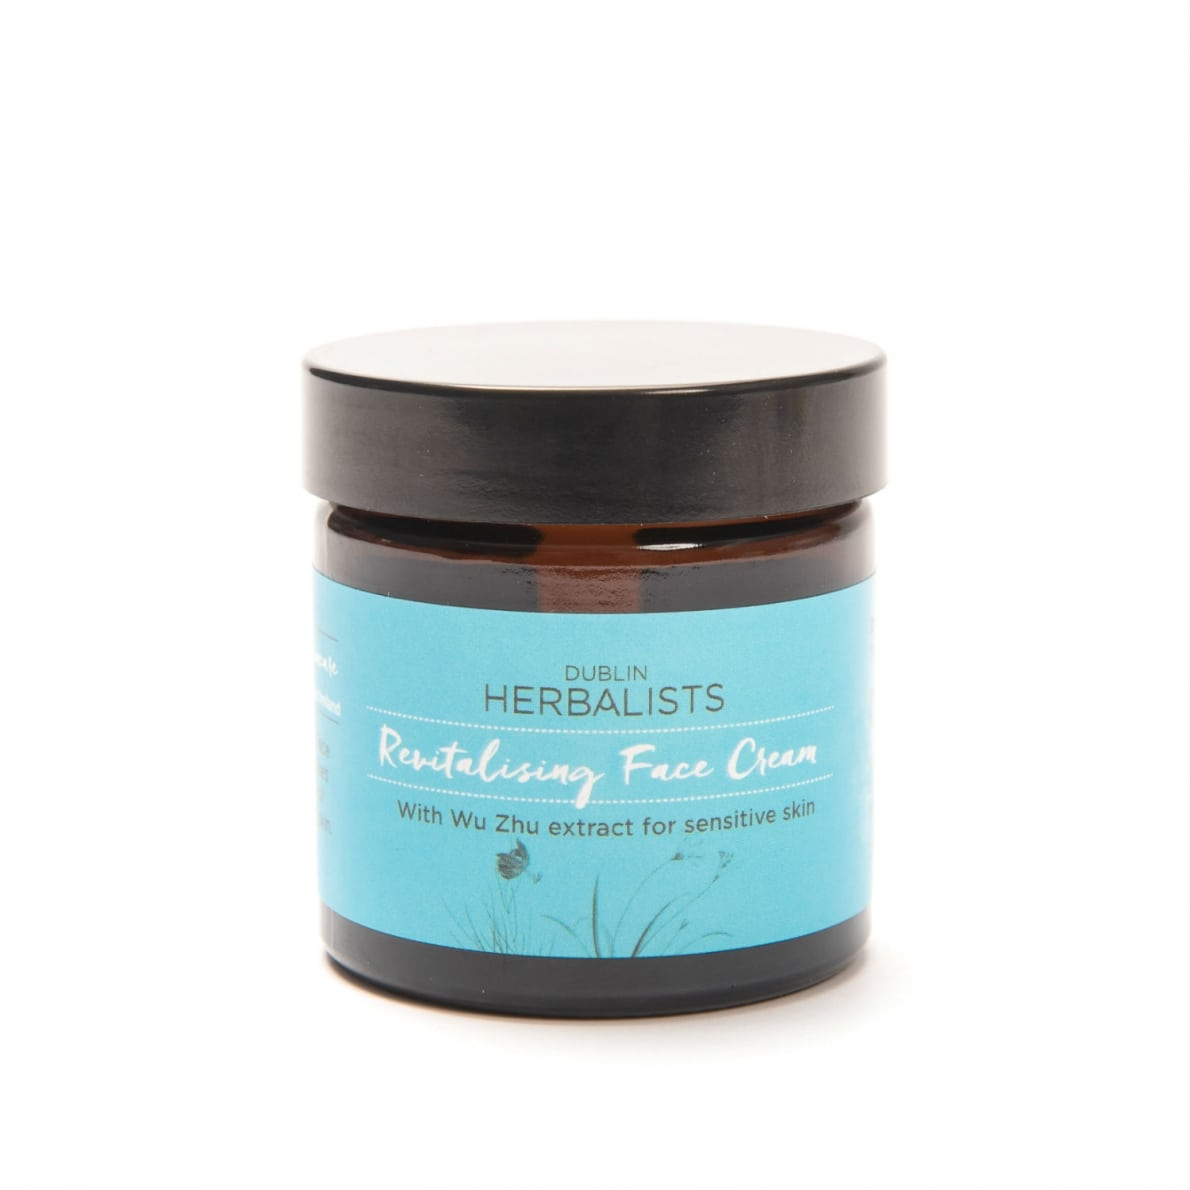 Dublin Herbalist - Revitalising Face Cream With Wu Zhu Extract for sensitive skin